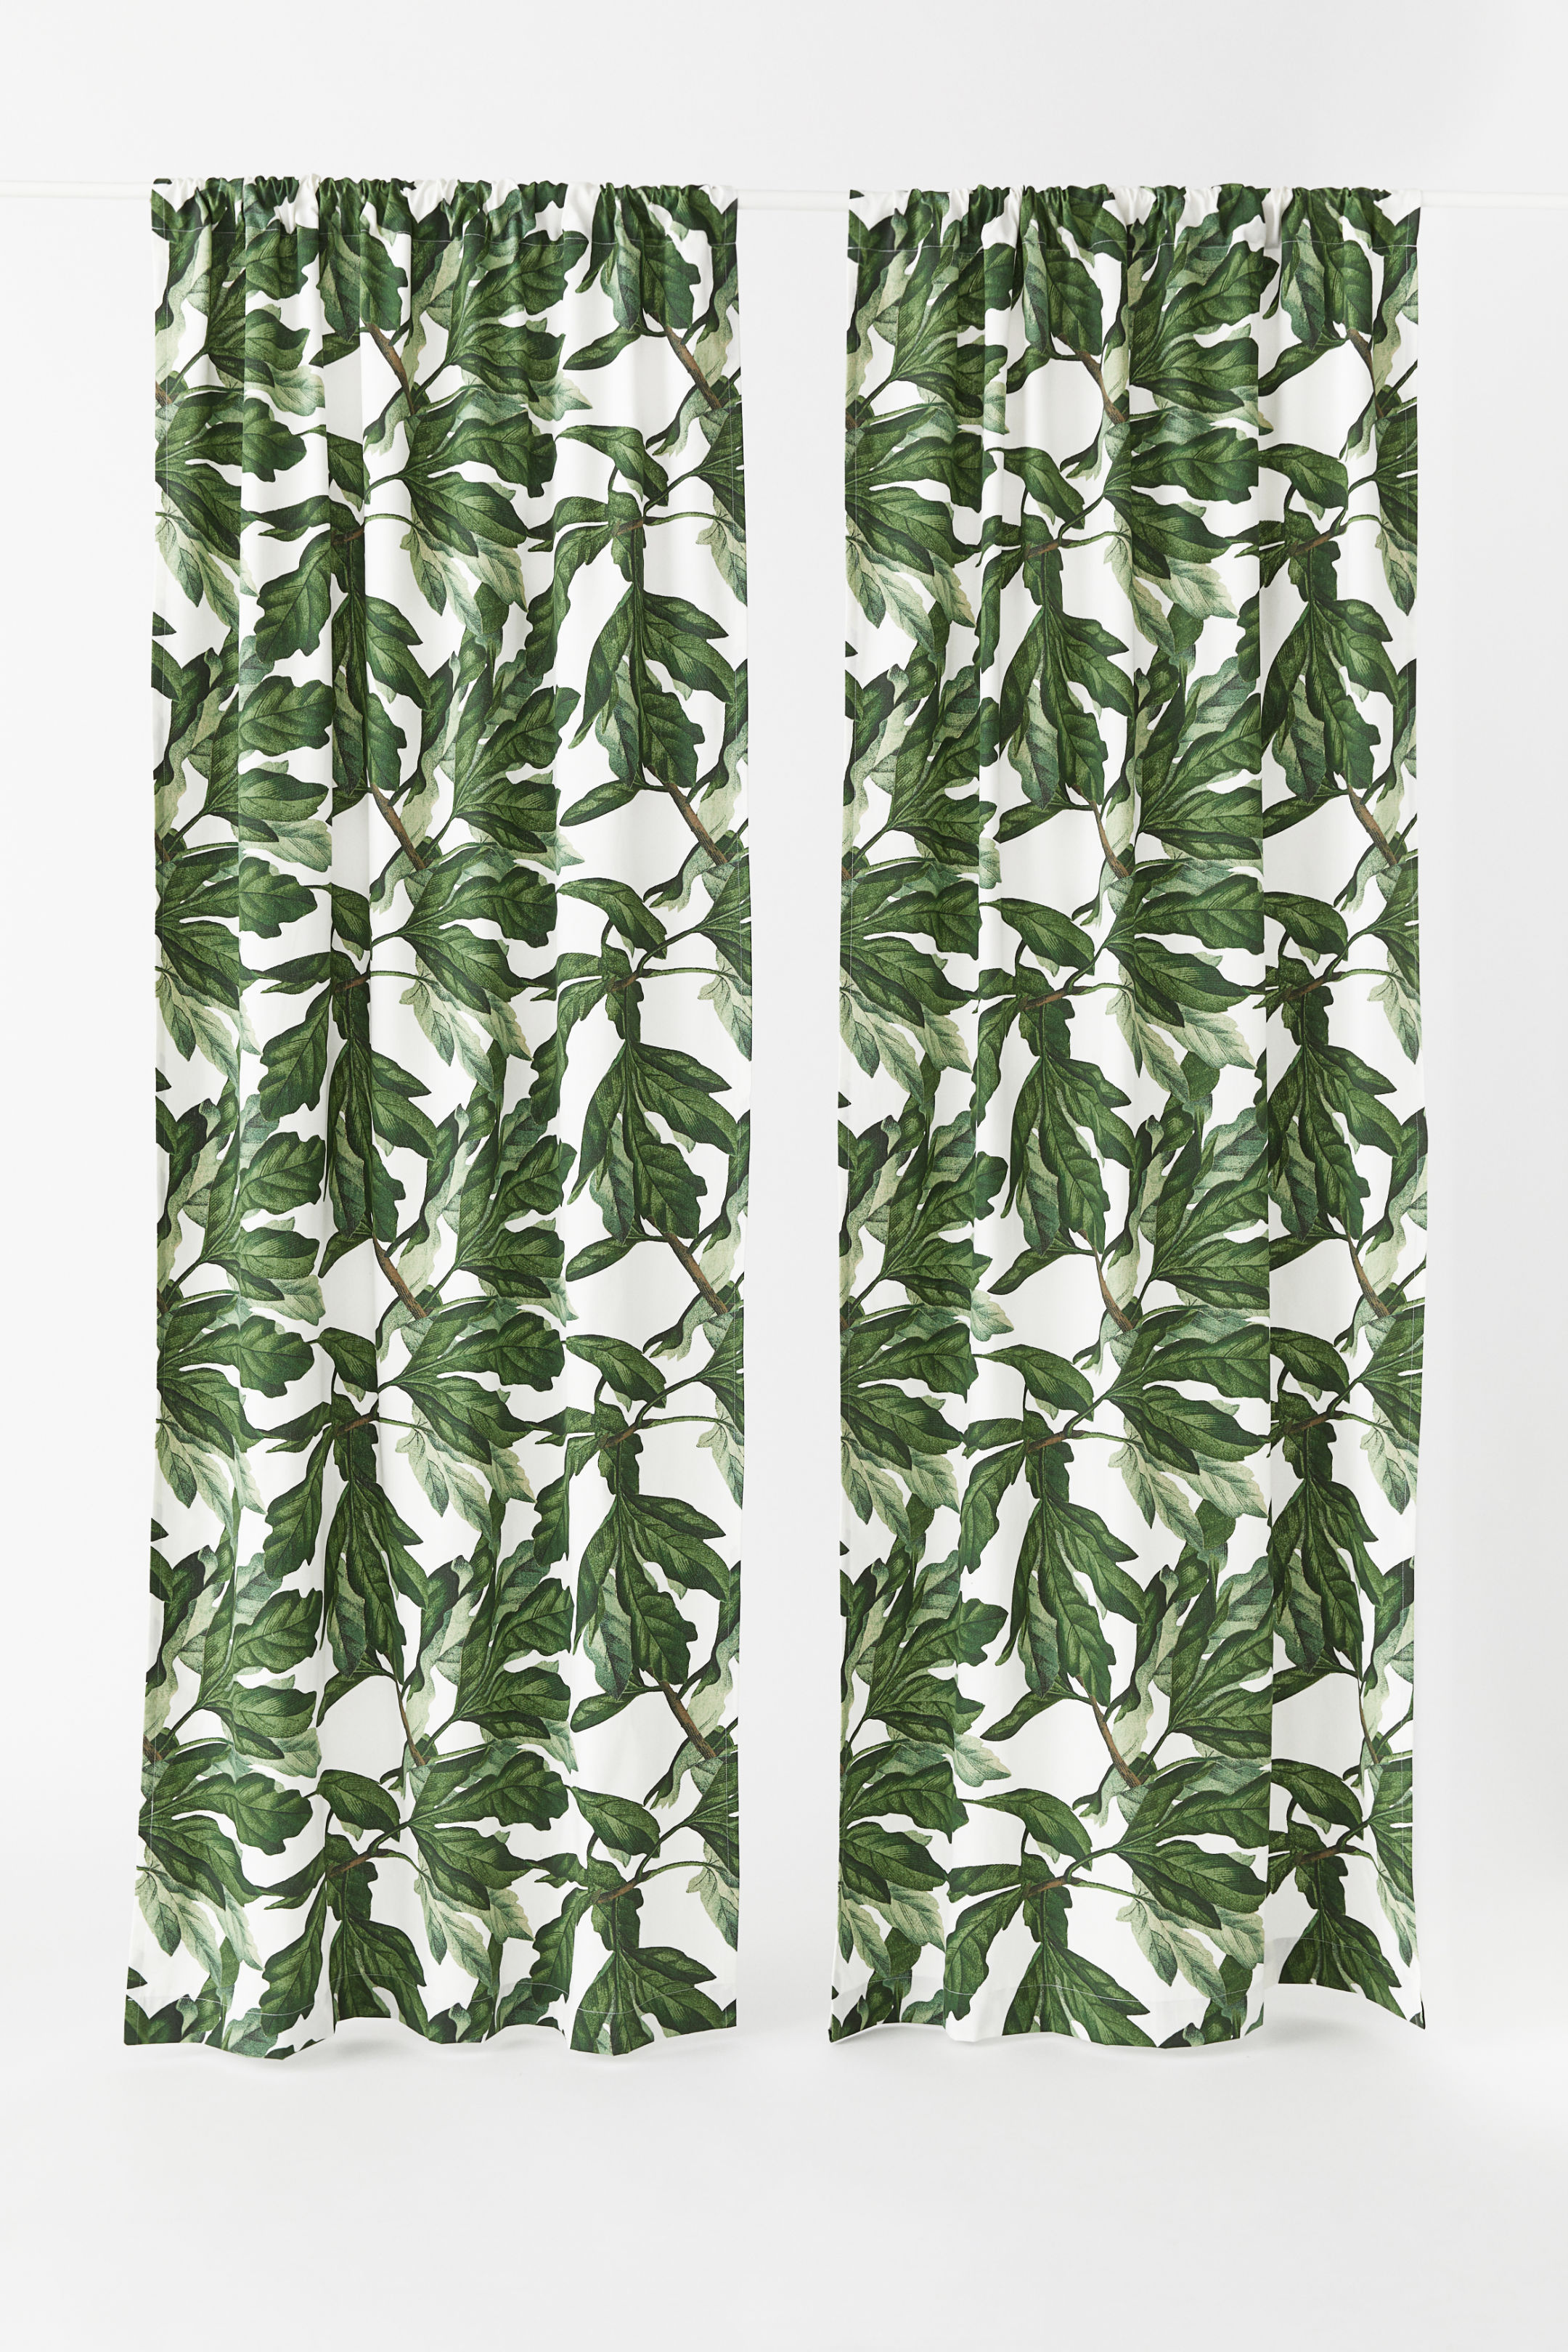 Natural White Fig Leaf Curtains - £24.99